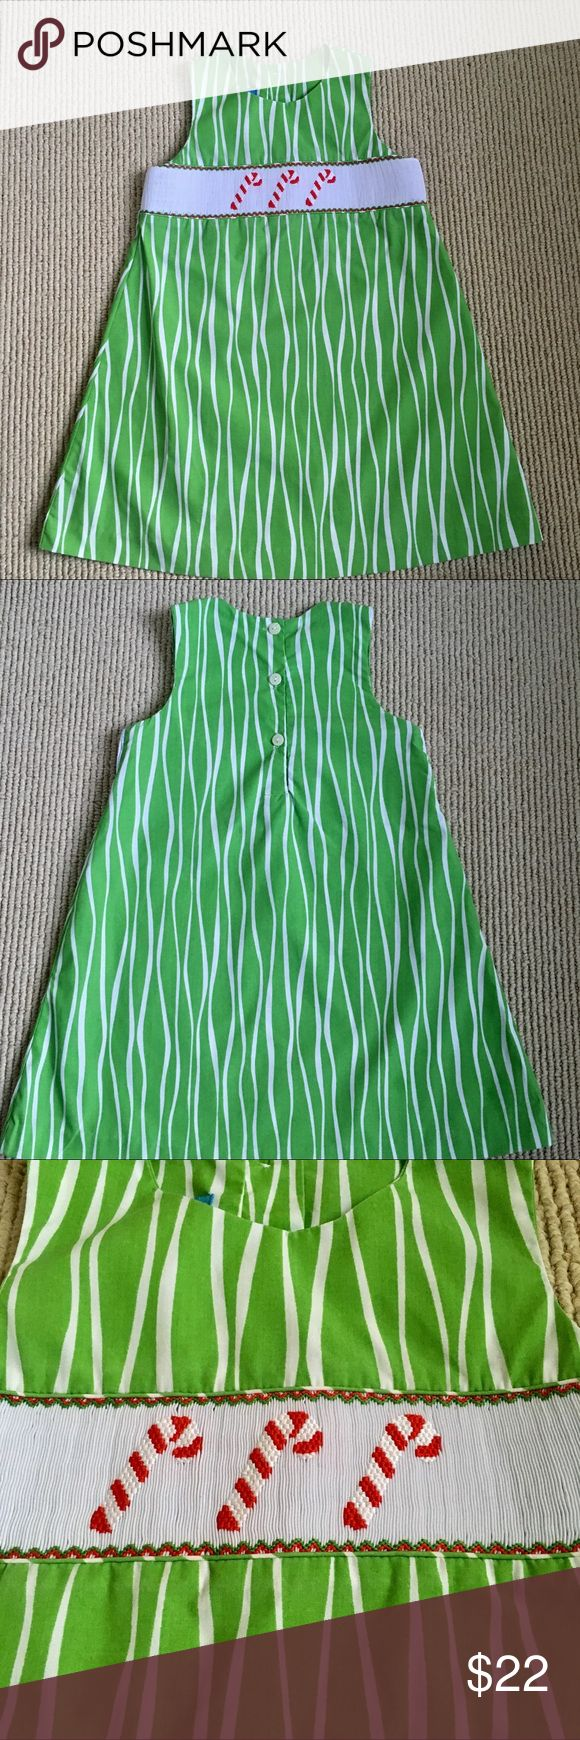 Toddler Hand Smocked Christmas Dress This hand-smocked candy cane dress is so cute with a simple turtleneck or blouse underneath. In excellent used condition. Anavini Dresses Casual